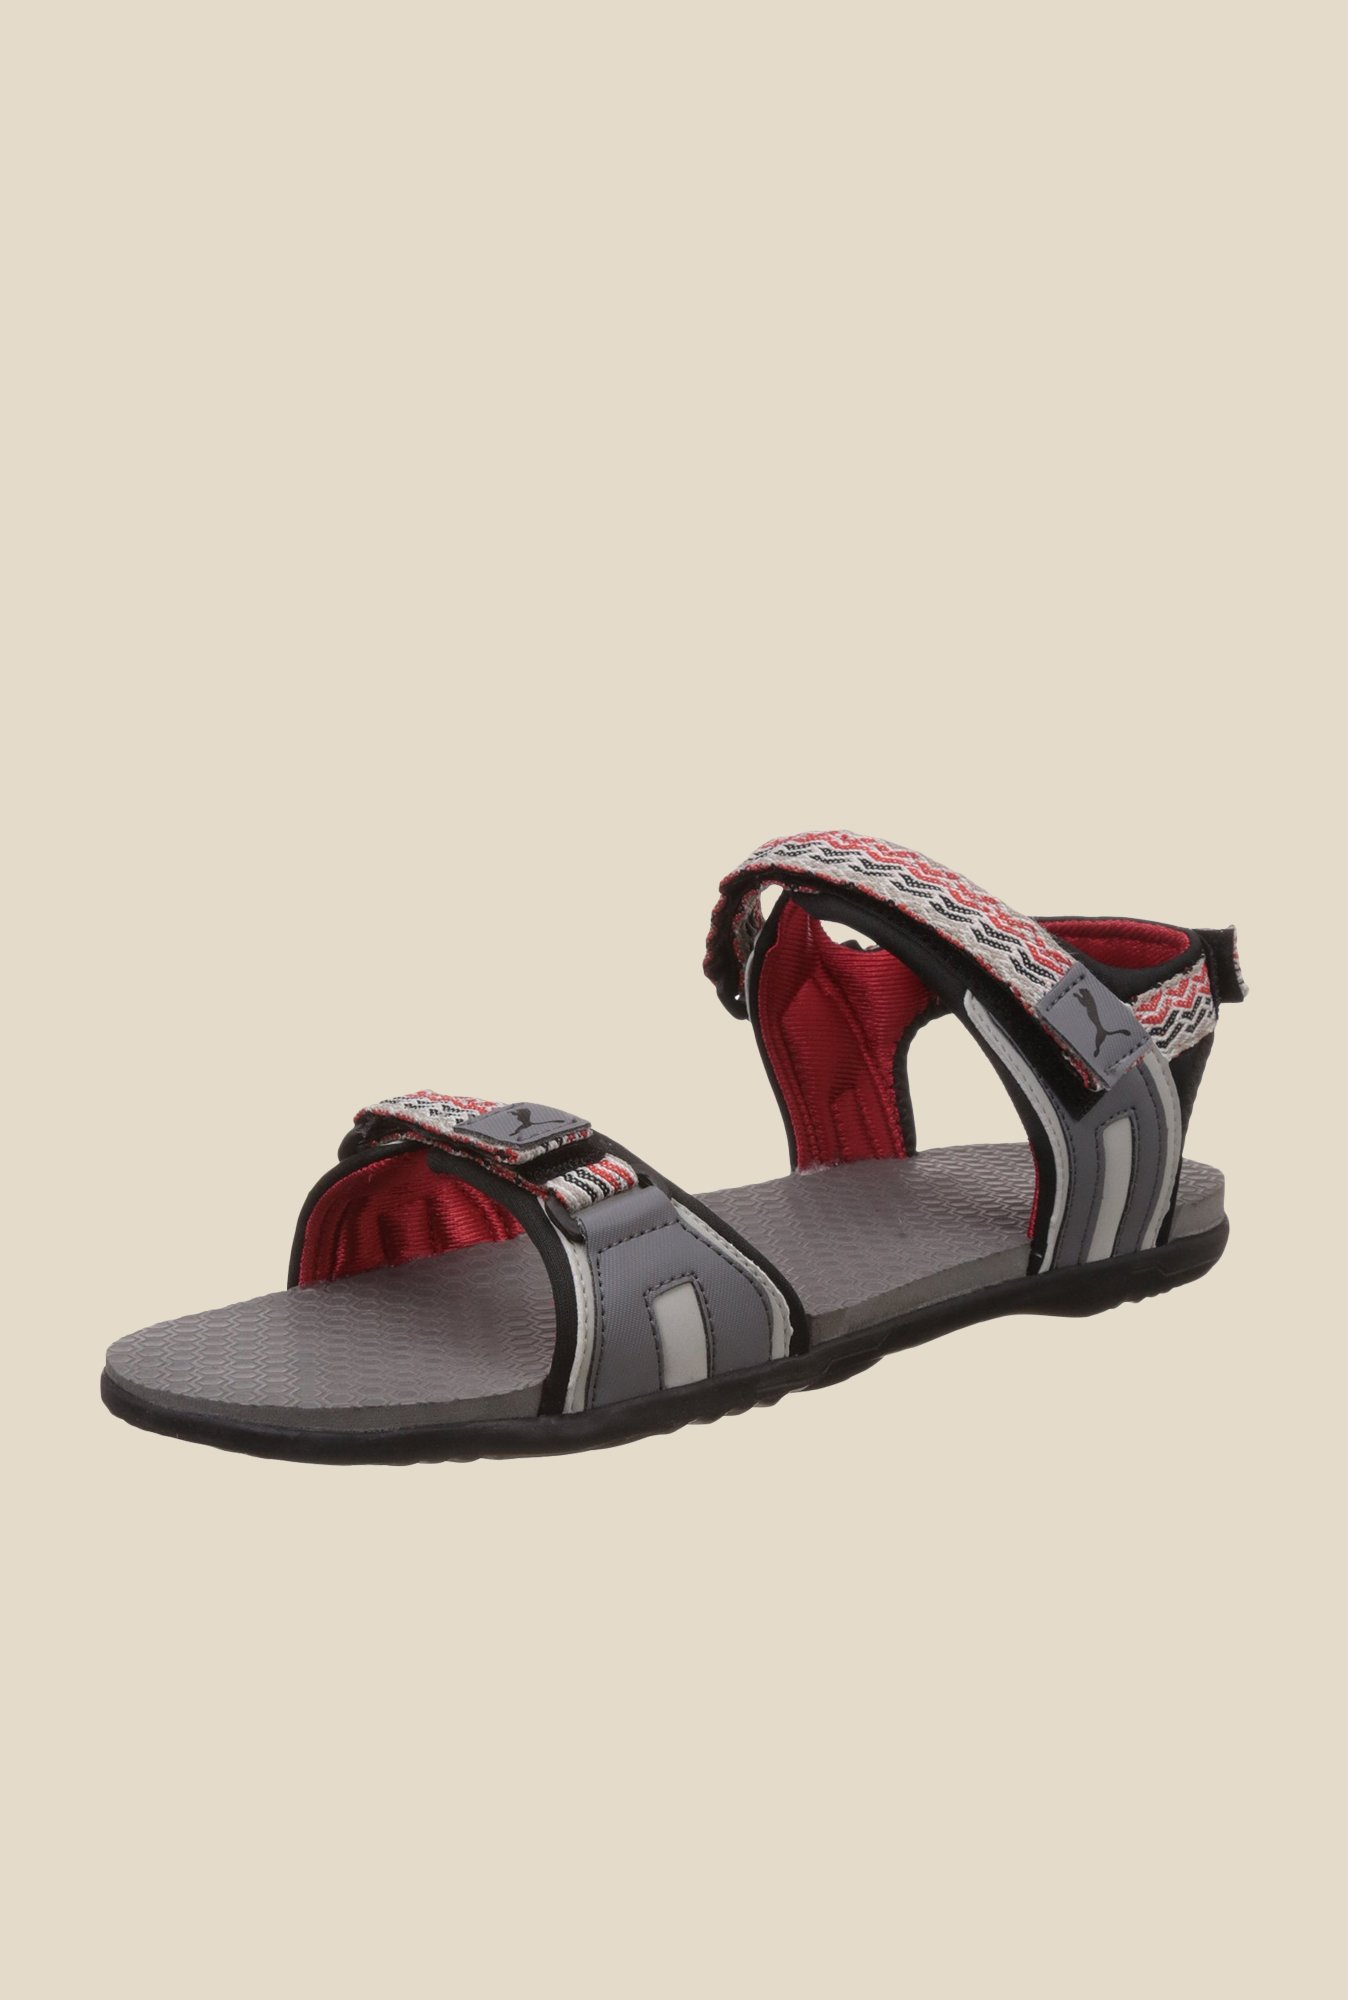 67695886f6c8 Buy Puma Zoom IDP Grey   Red Floater Sandals for Women at Best ...